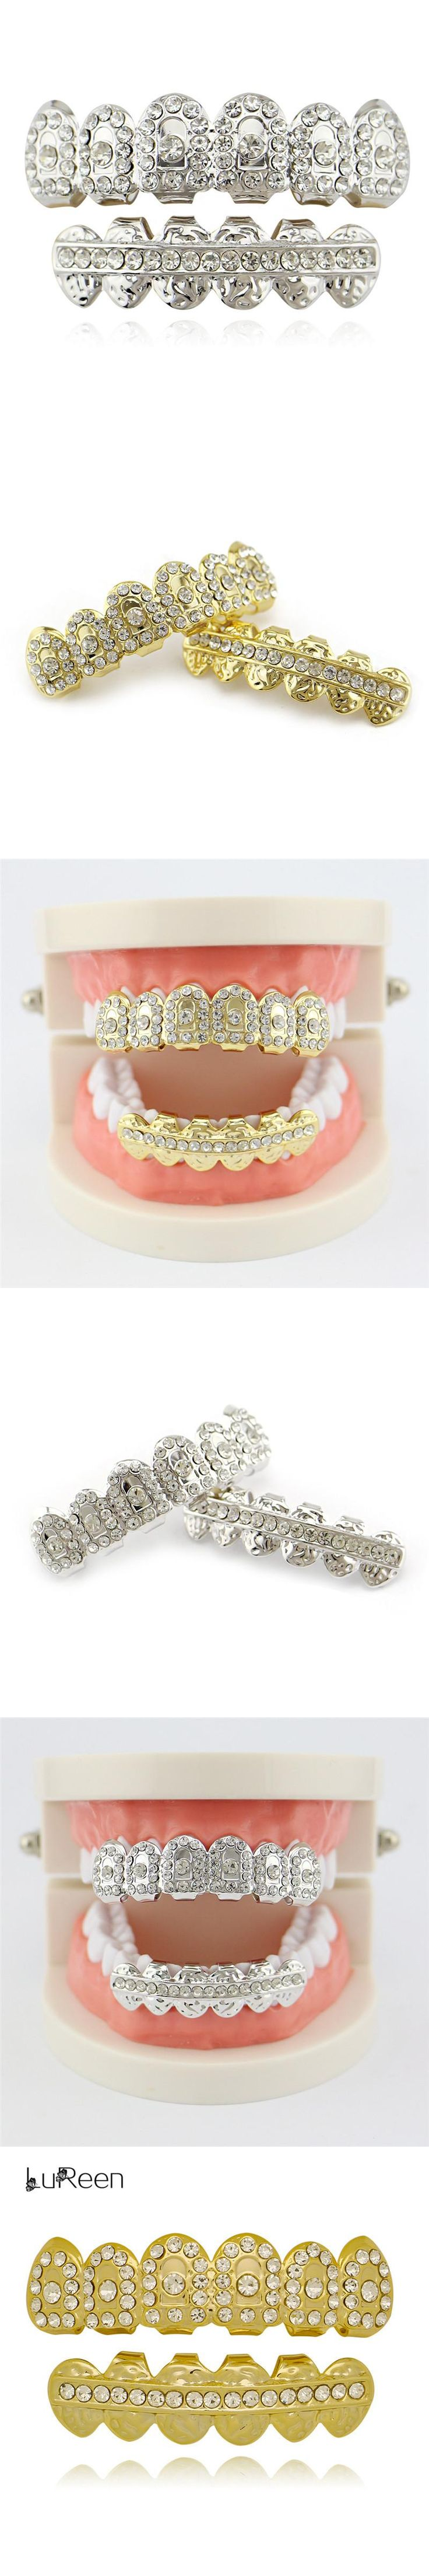 LuReen Hiphop Gold Grills Teeth Top & Bottom iced Out Cosplay Dental Grills Tooth Vampire Teeth Caps Party Jewelry Gift LD0039